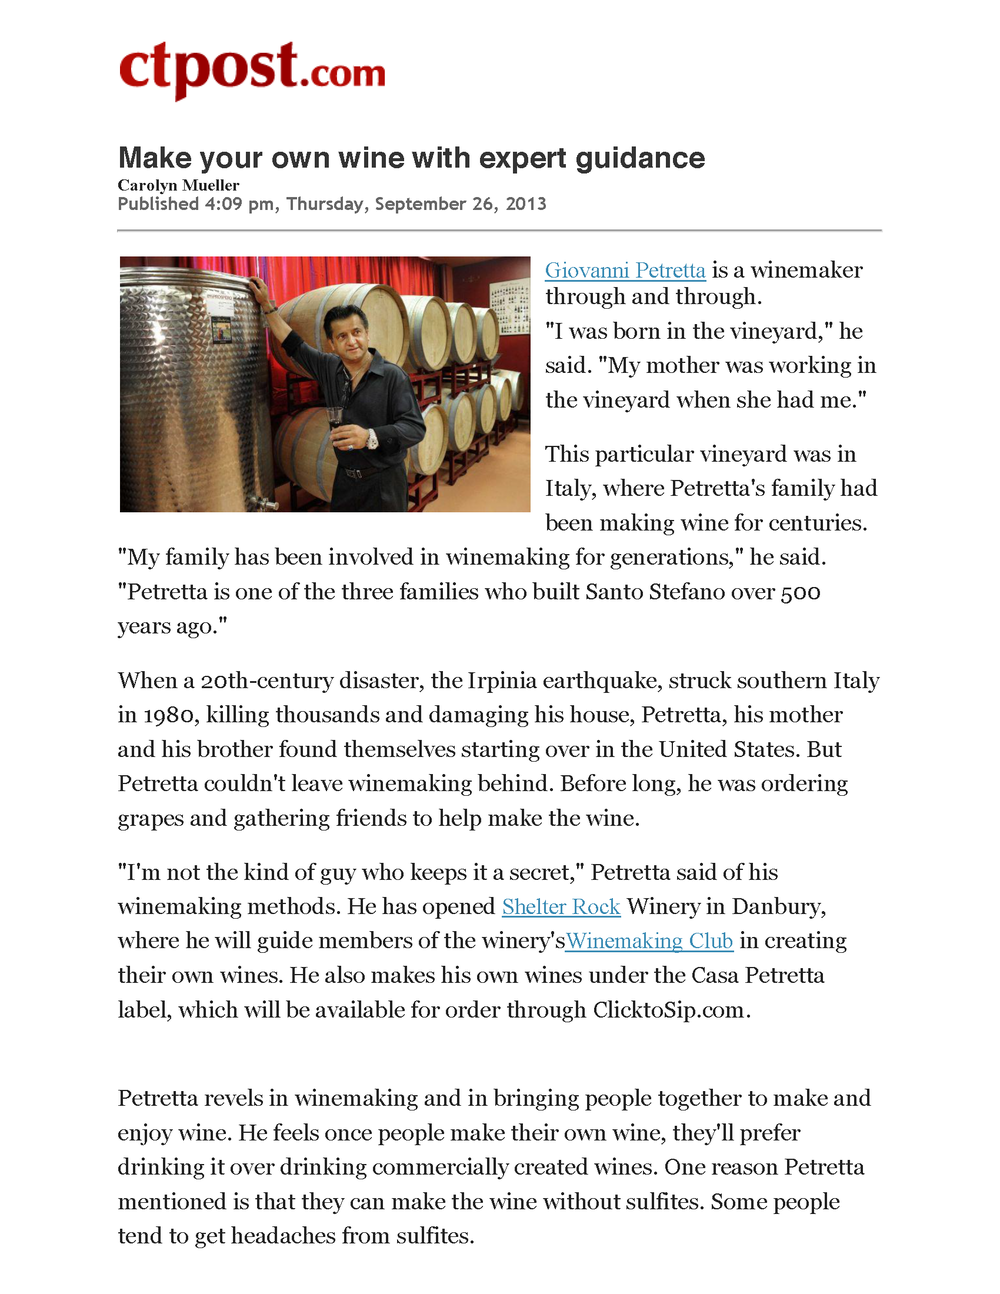 Make-your-own-wine-with-expert-guidance-Sept-2013-2_Page_1.png